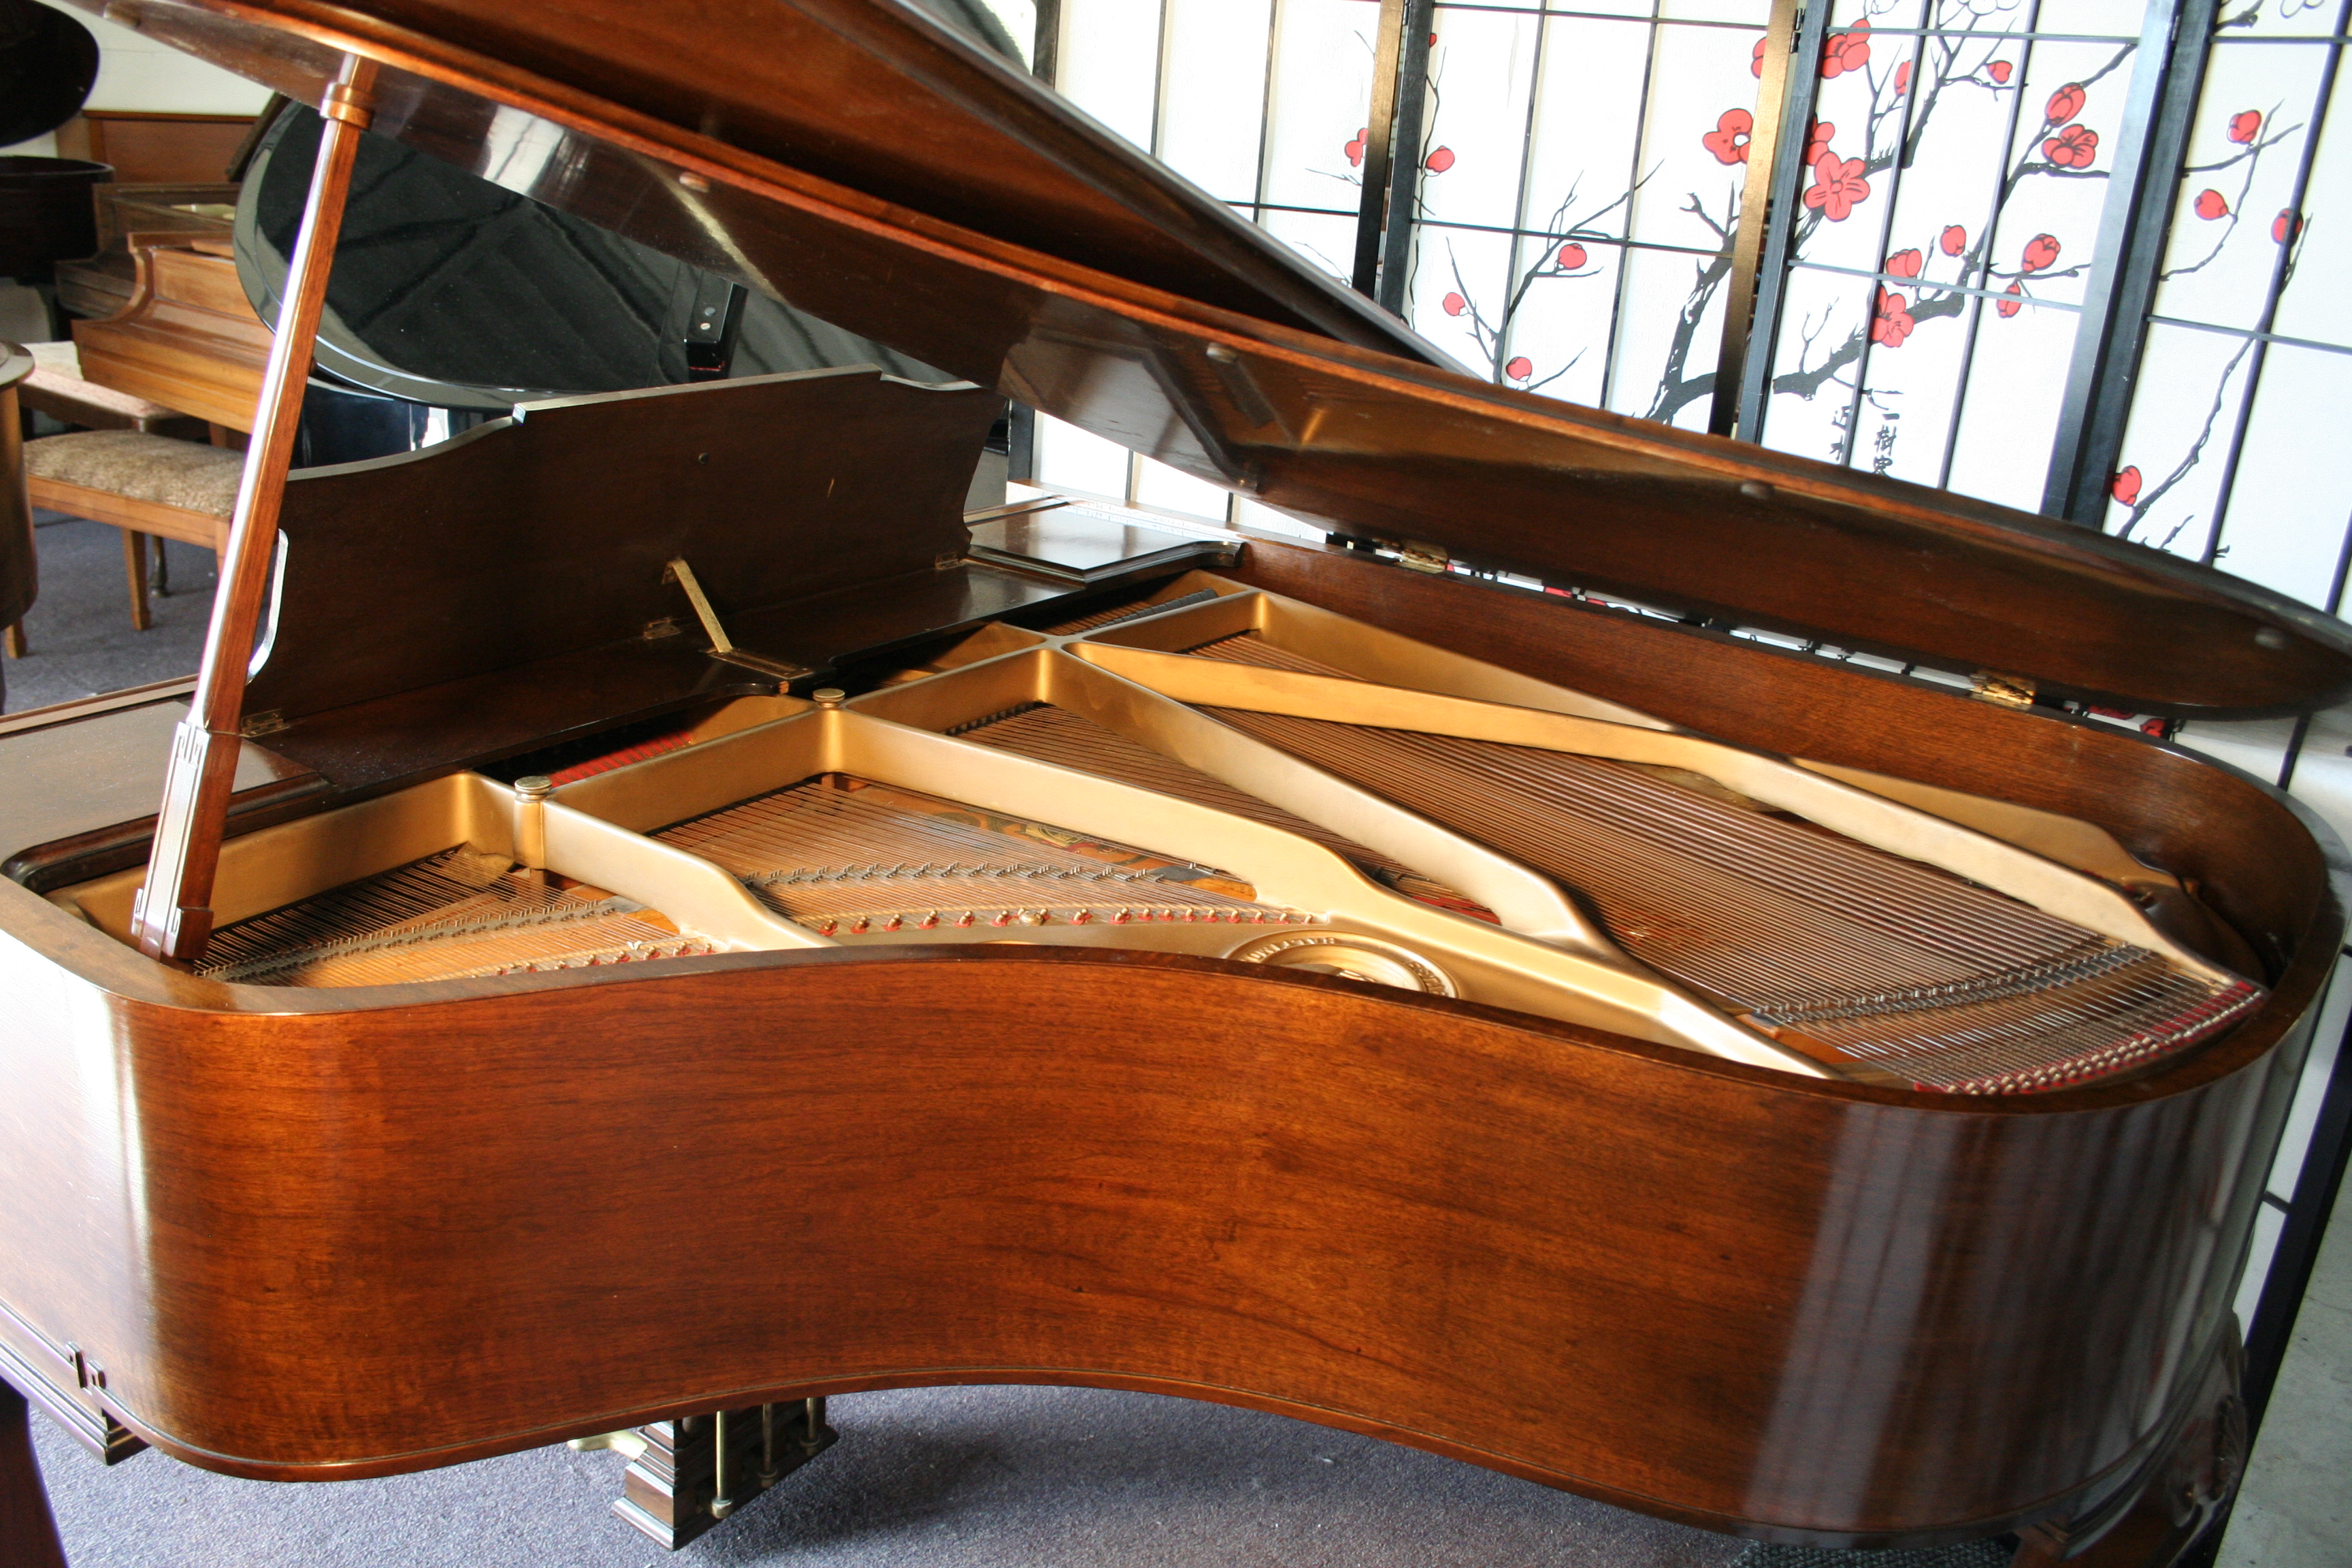 SOLD) Art Case Knabe Grand Piano 5'1' Refurbished/French Polished